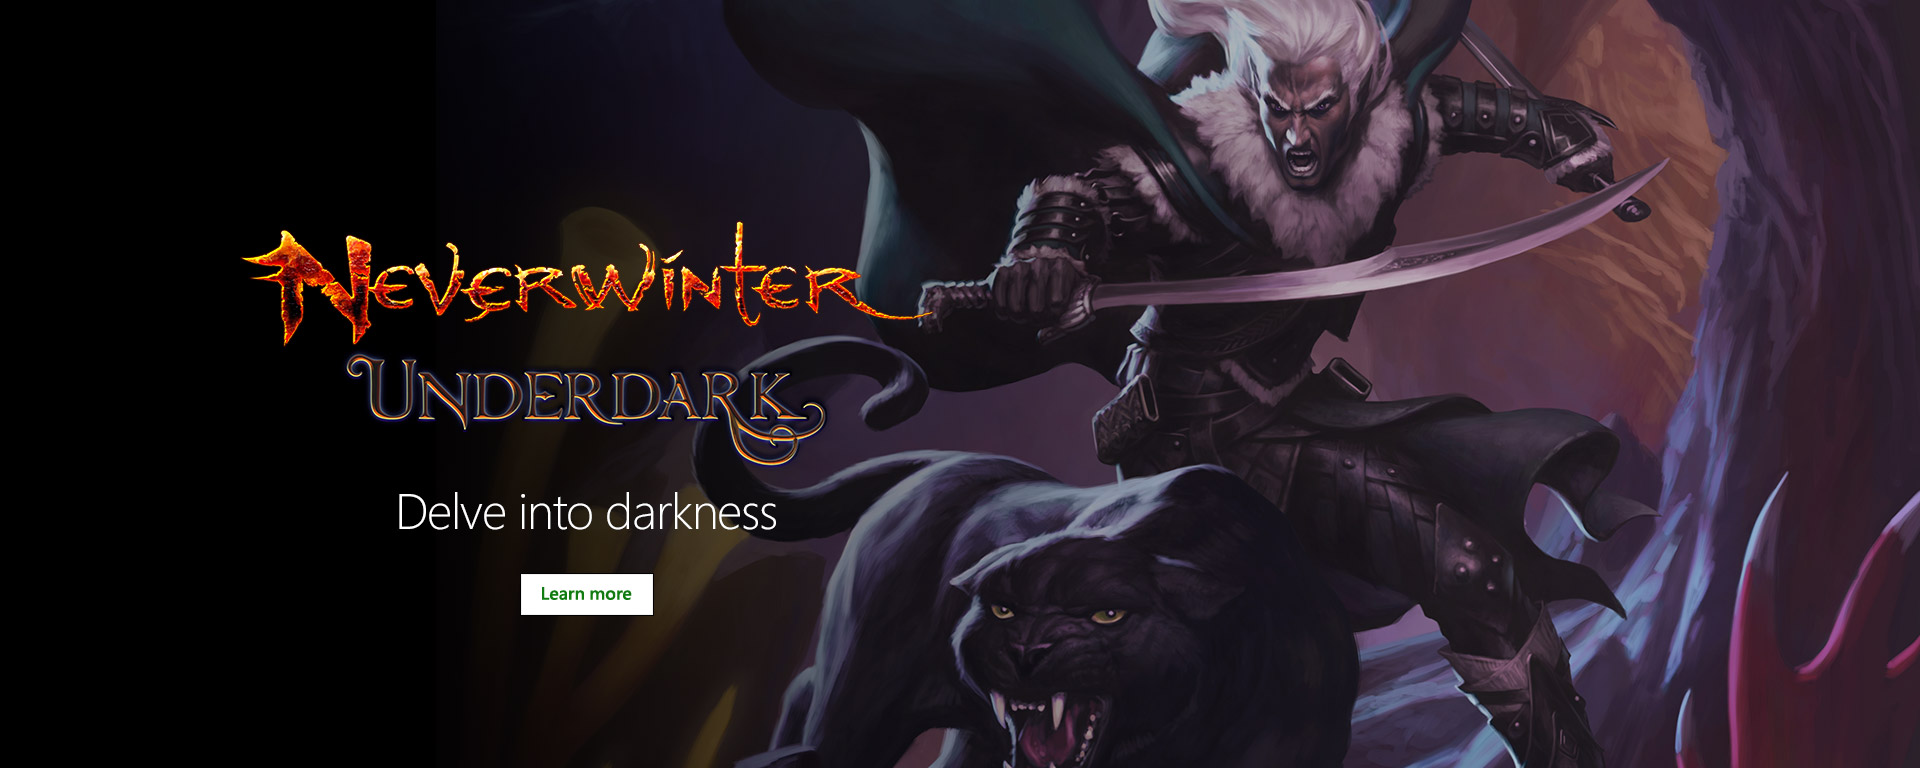 neverwinter underdark